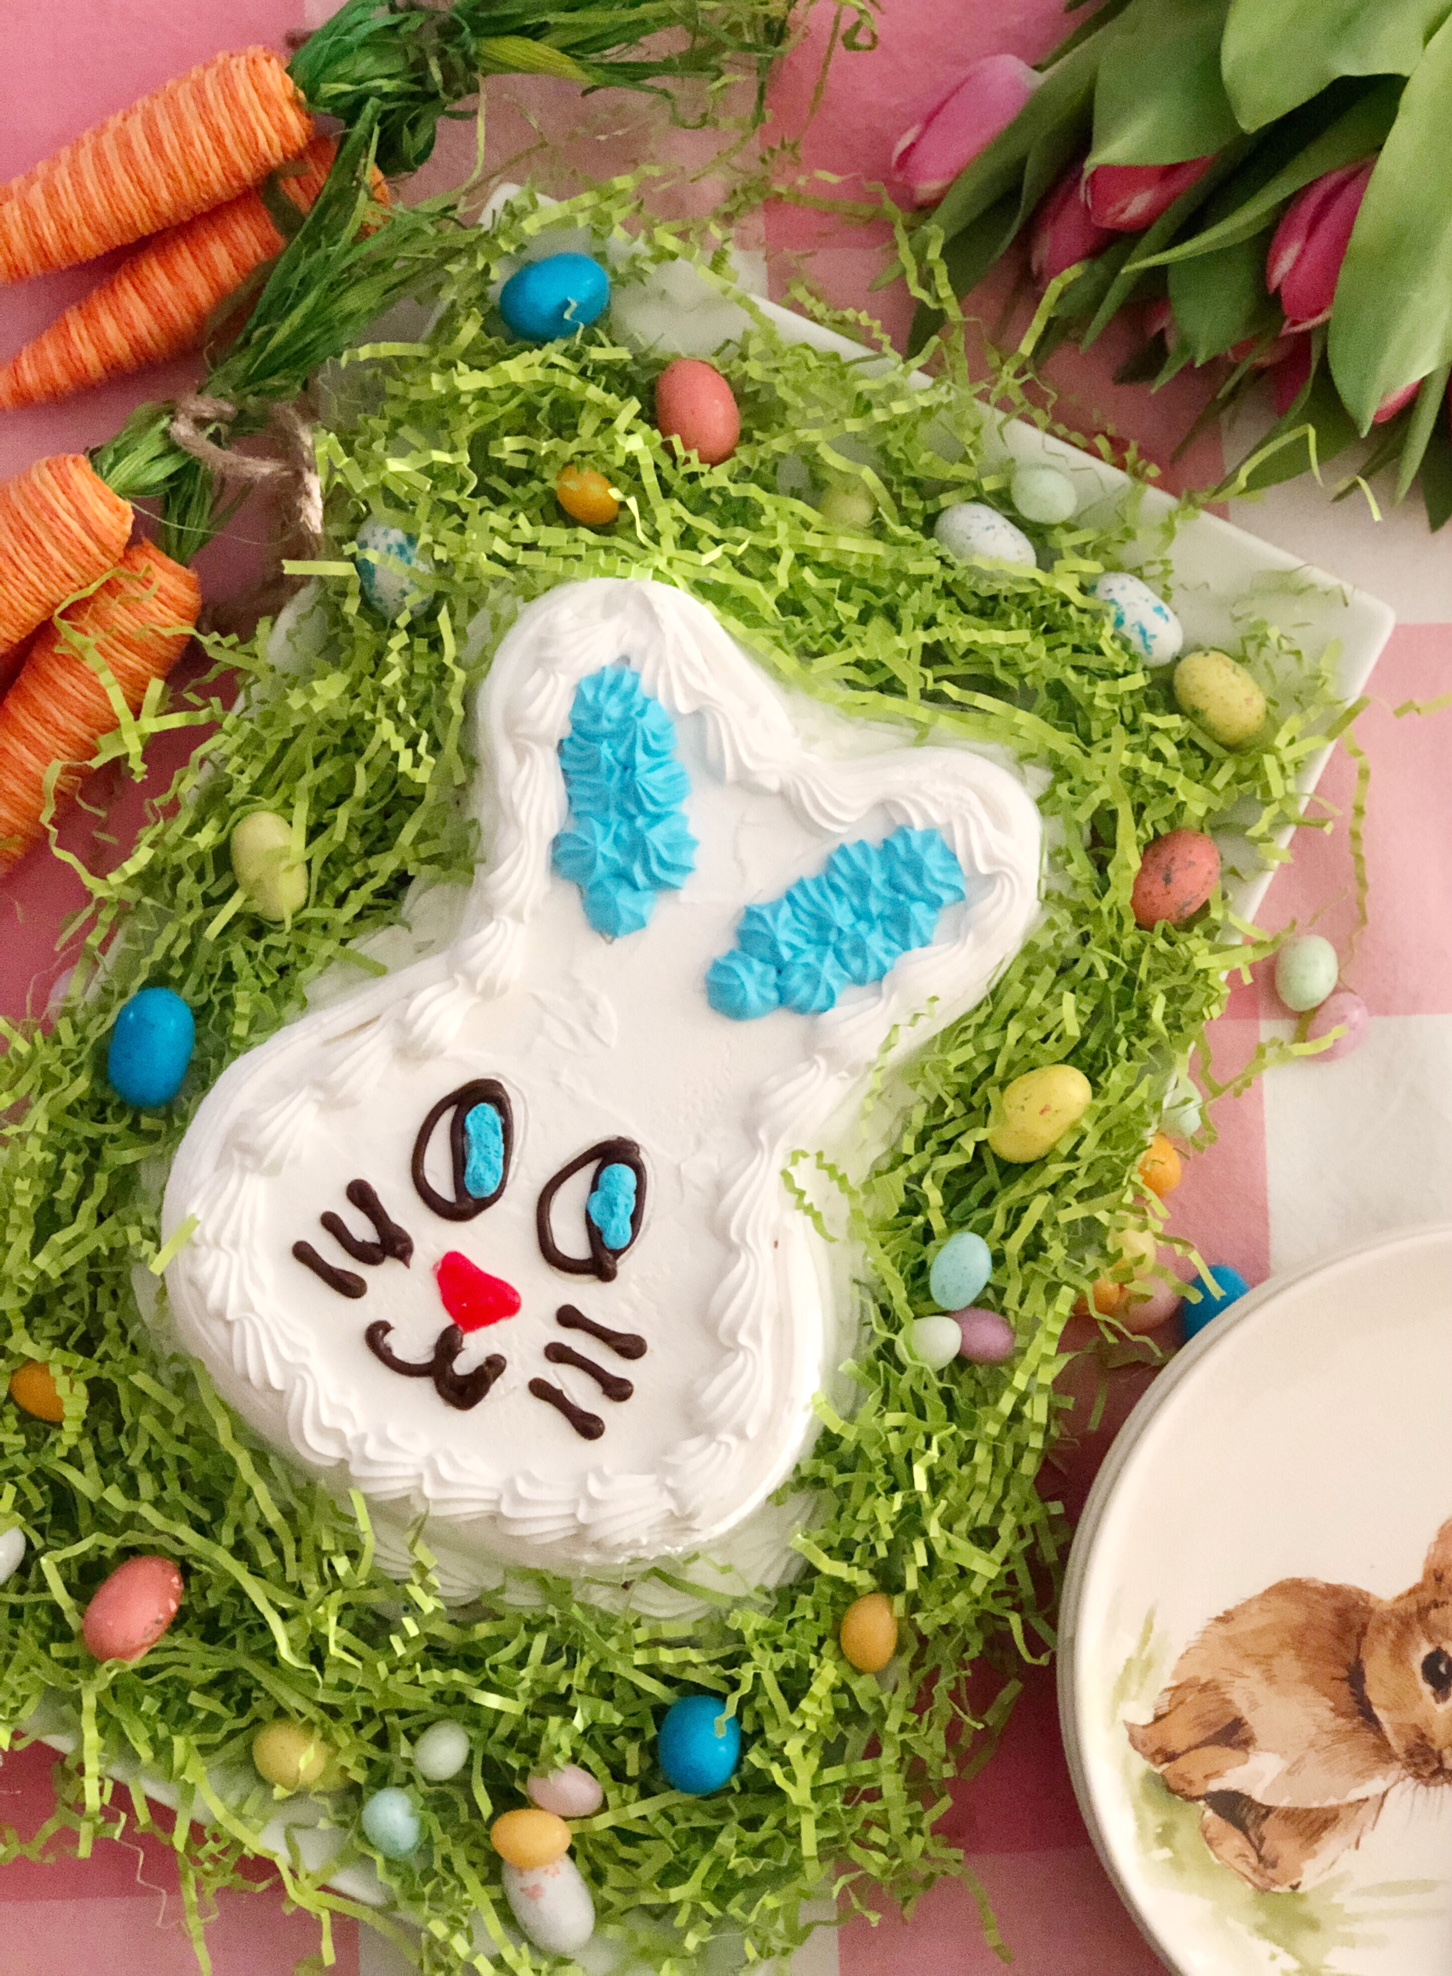 Carvel Bunny Ice Cream Cake on Easter Decorated Plate